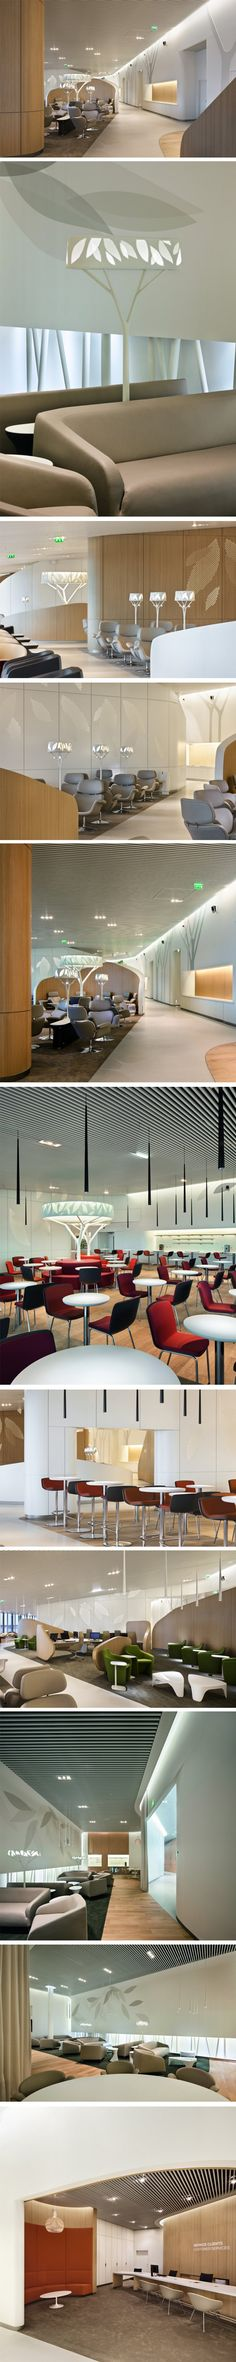 Business Lounge d'Air France par Noé Duchaufour-Lawrance et Brandimage Airport Lounge, Hotel Lounge, Office Lounge, Bar Lounge, Lounge Seating, Travel Lounge, Seating Plans, Workplace Design, Healthcare Design